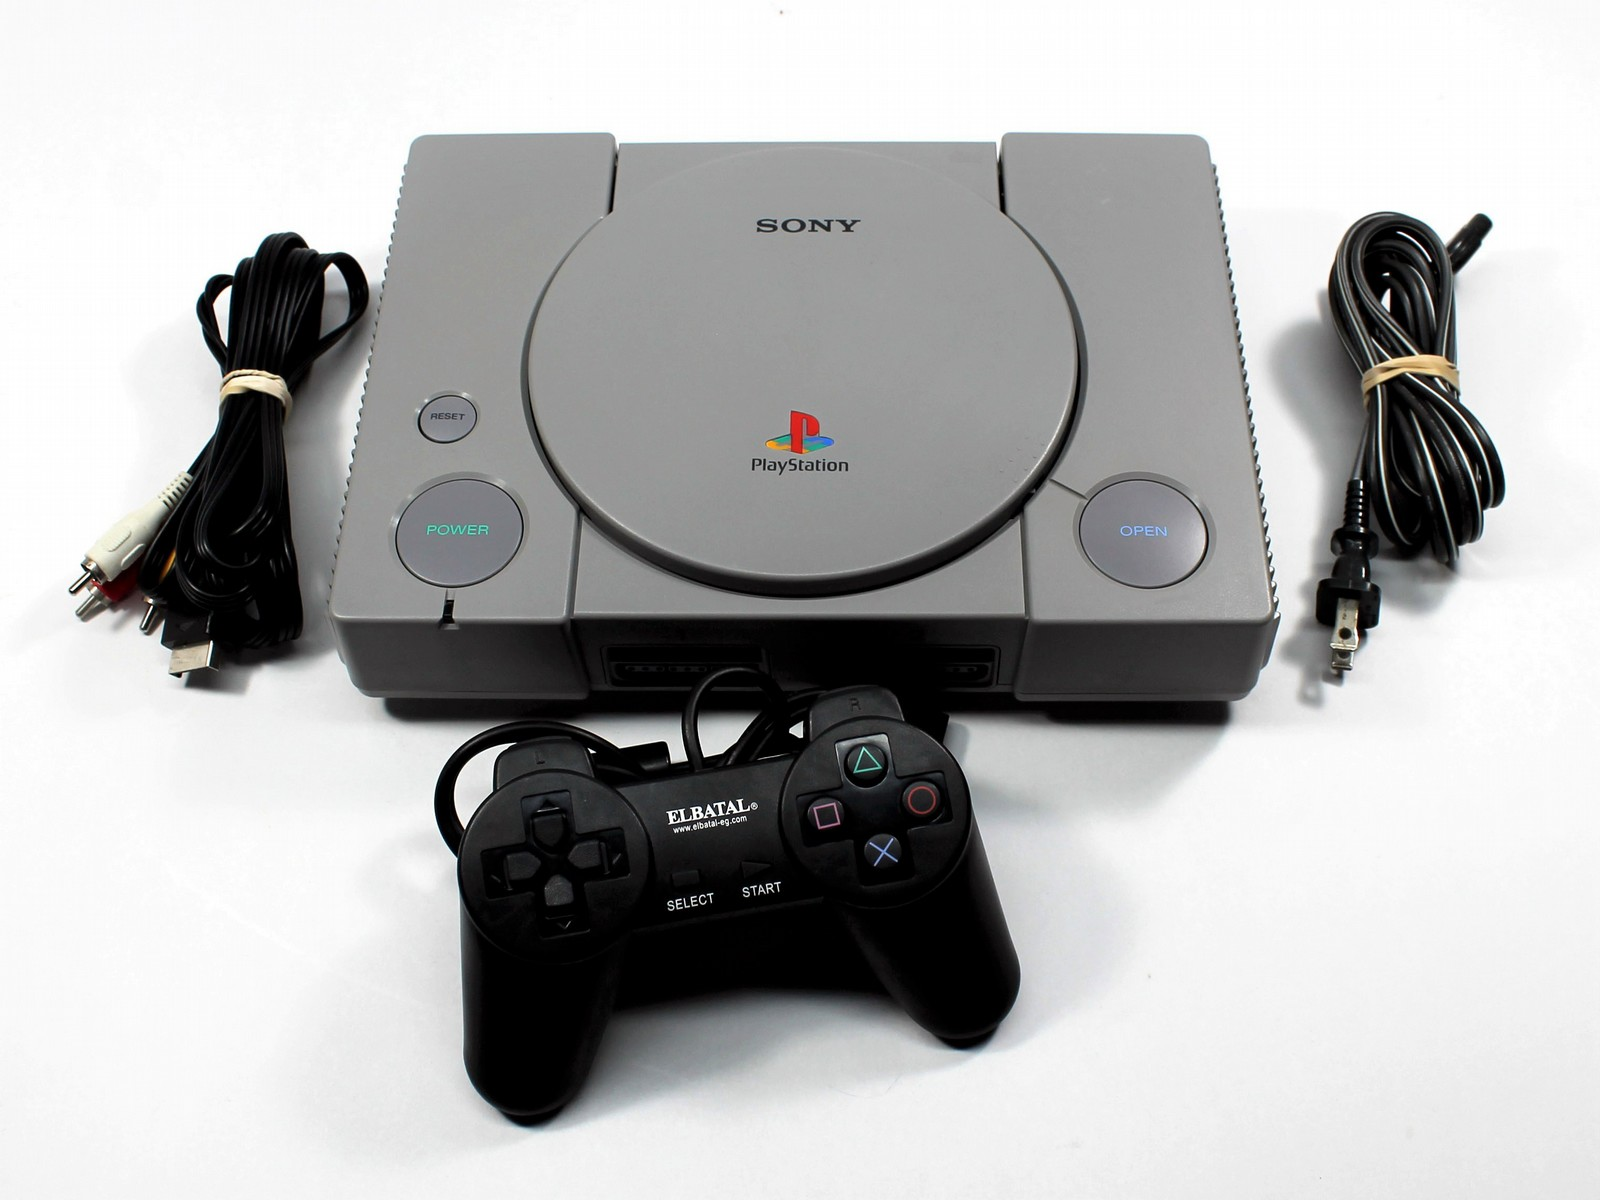 Original Sony Playstation System - Discounted PS1 Console